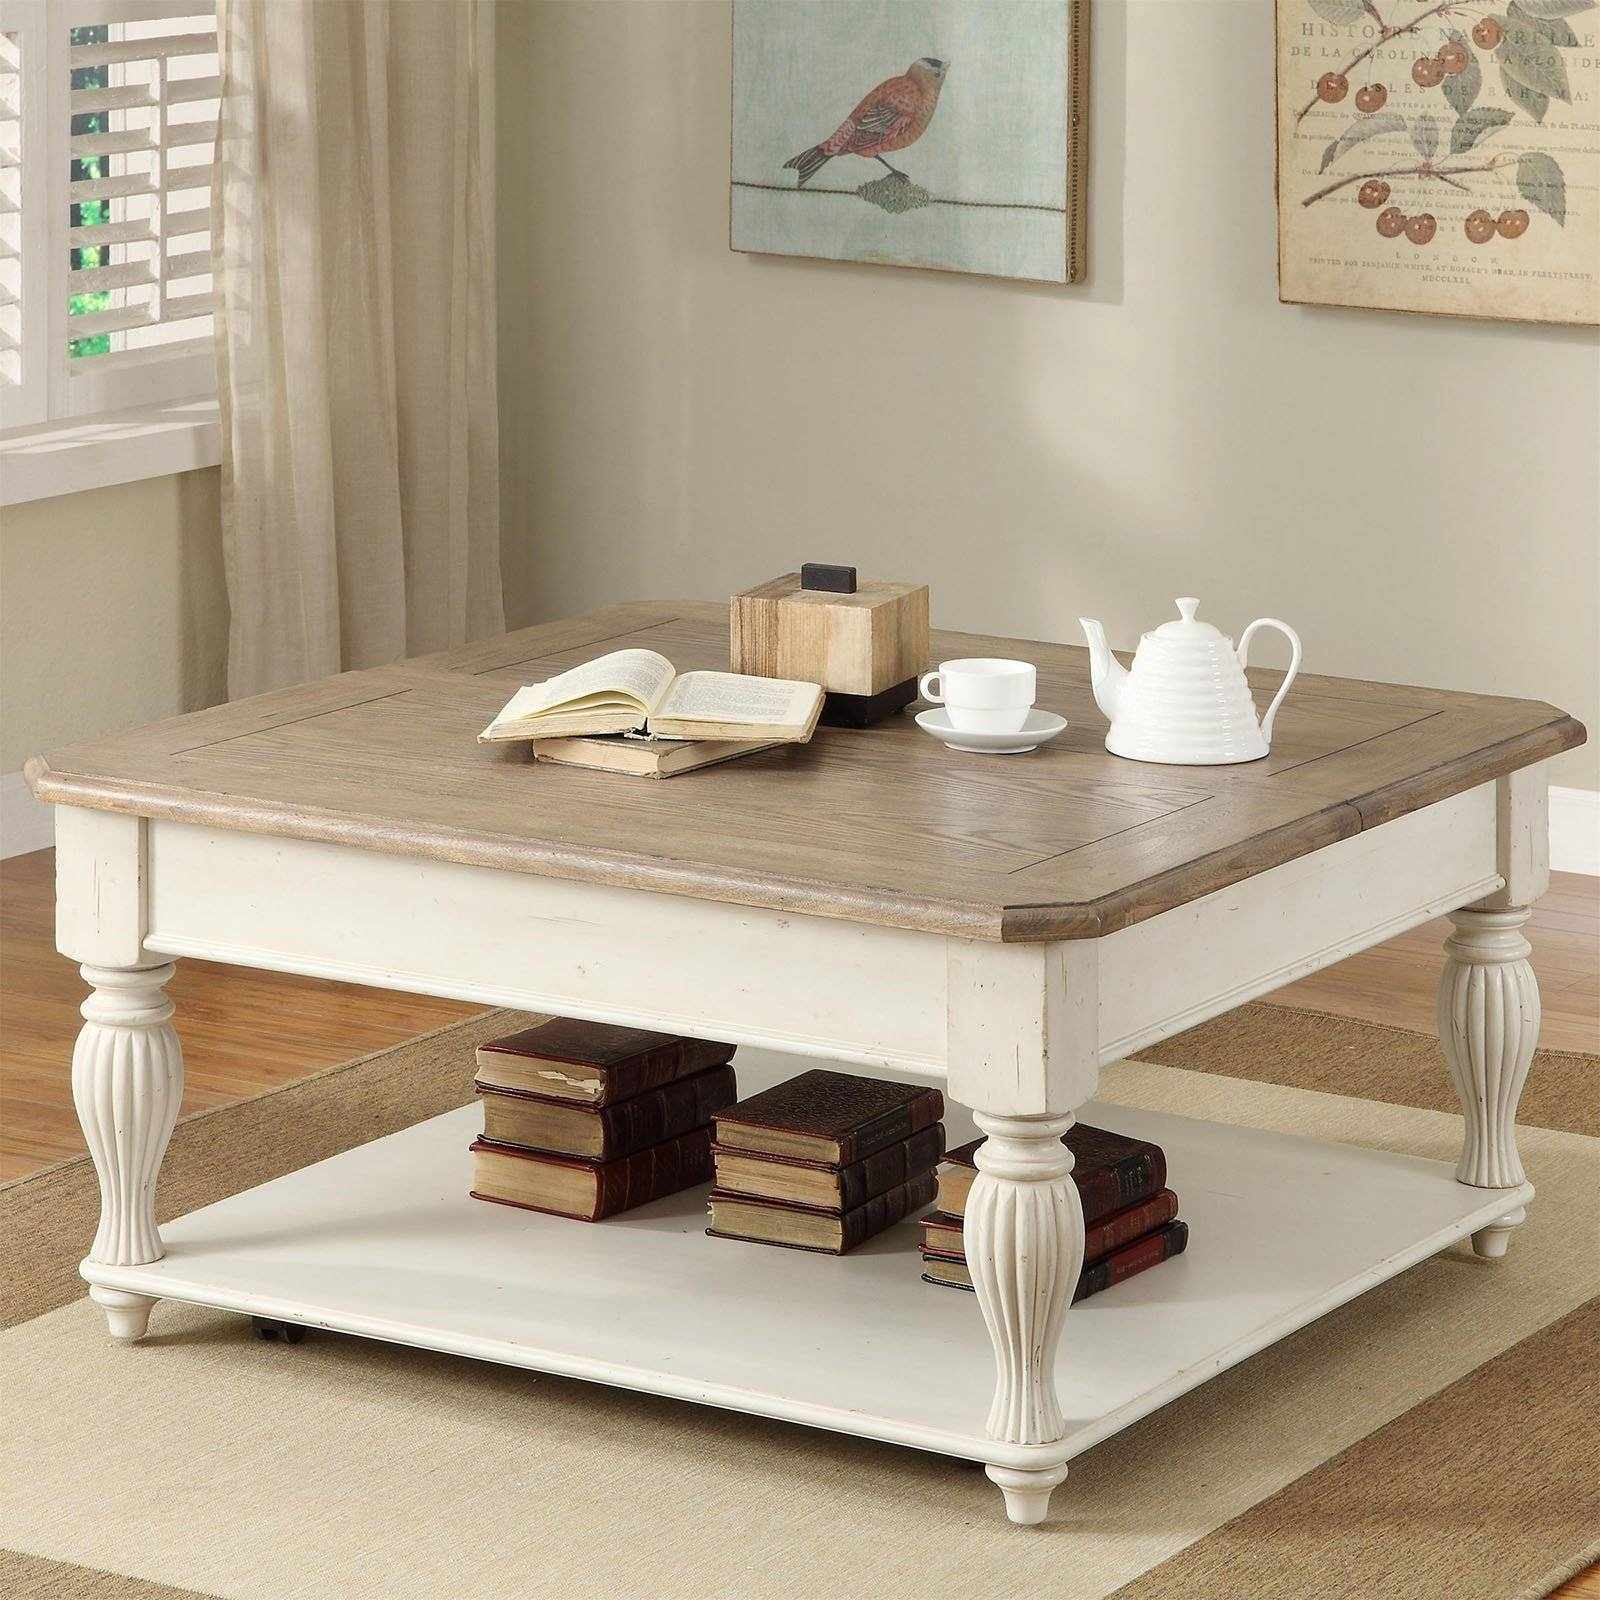 Coffee Table: Fascinating Square White Coffee Table Designs White inside White Wood and Glass Coffee Tables (Image 9 of 30)